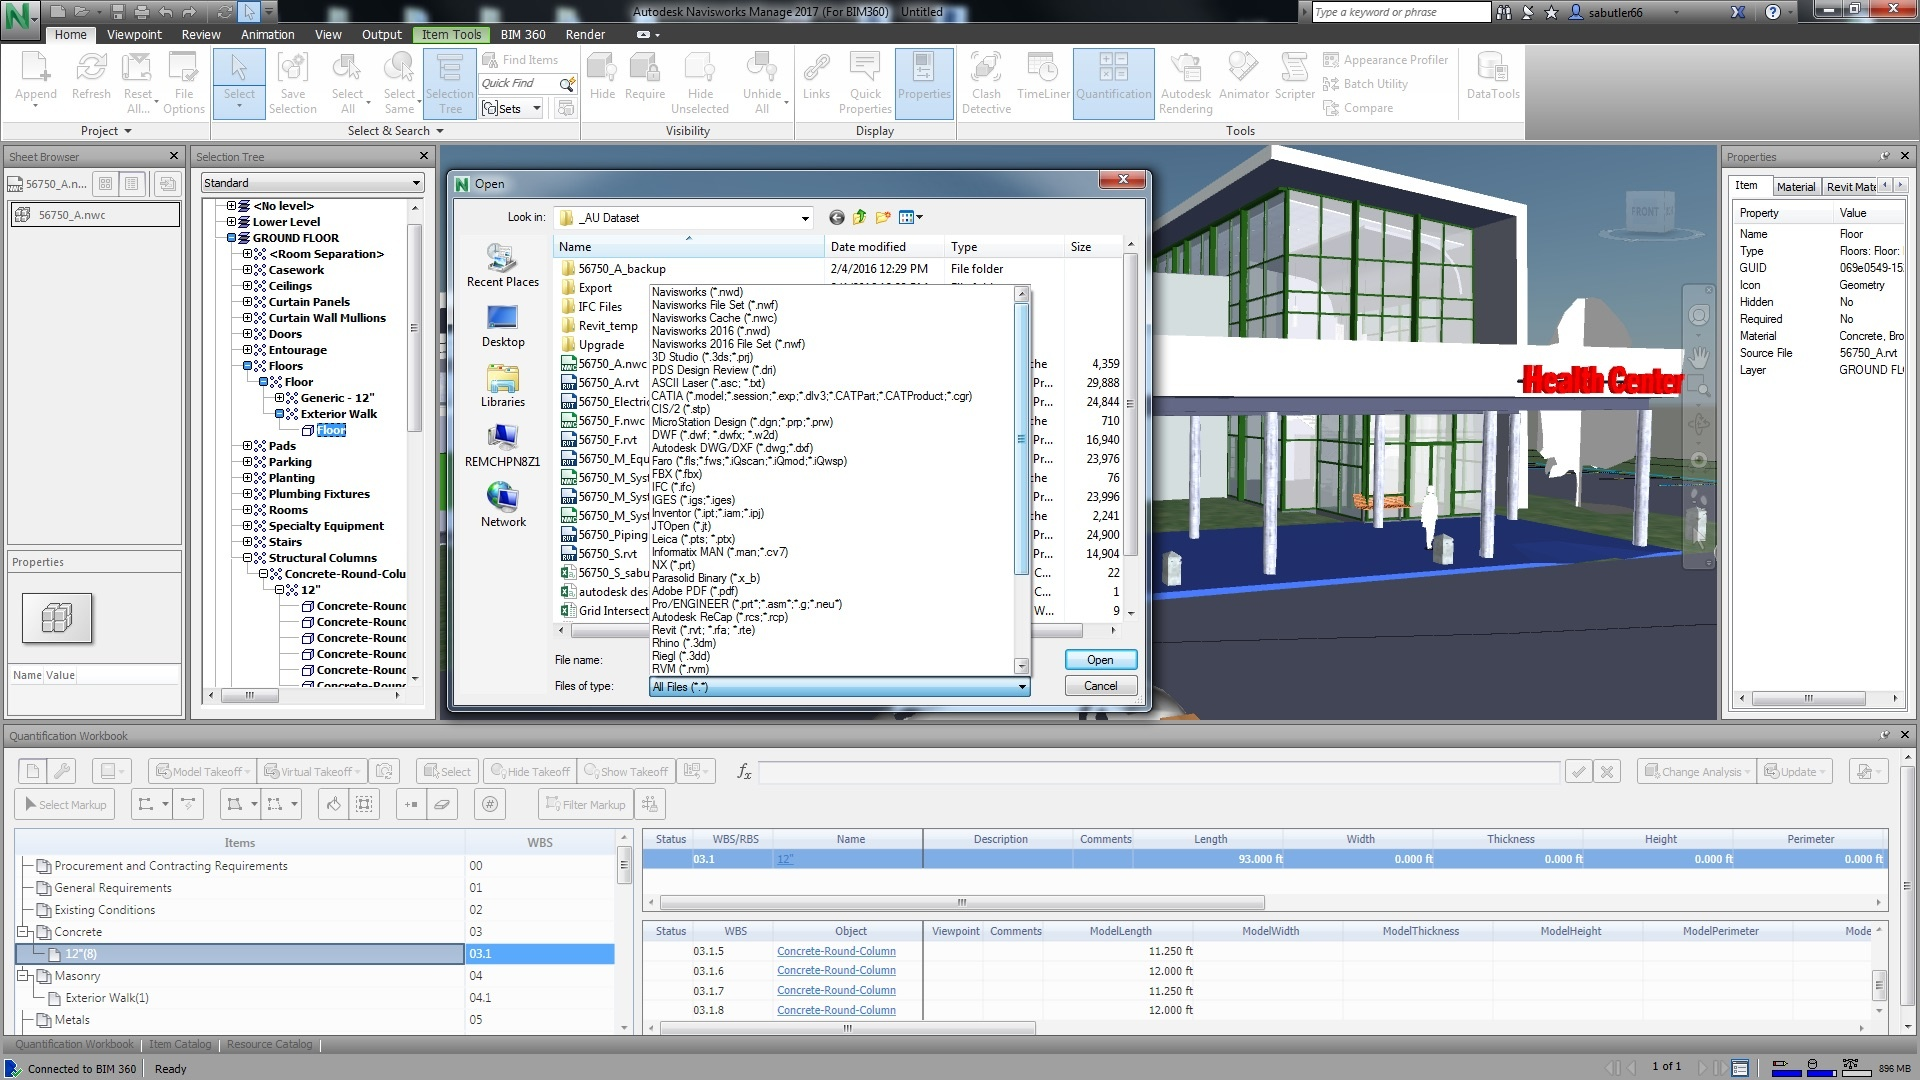 Autodesk BIM 360 Navisworks 2017 Product Integration